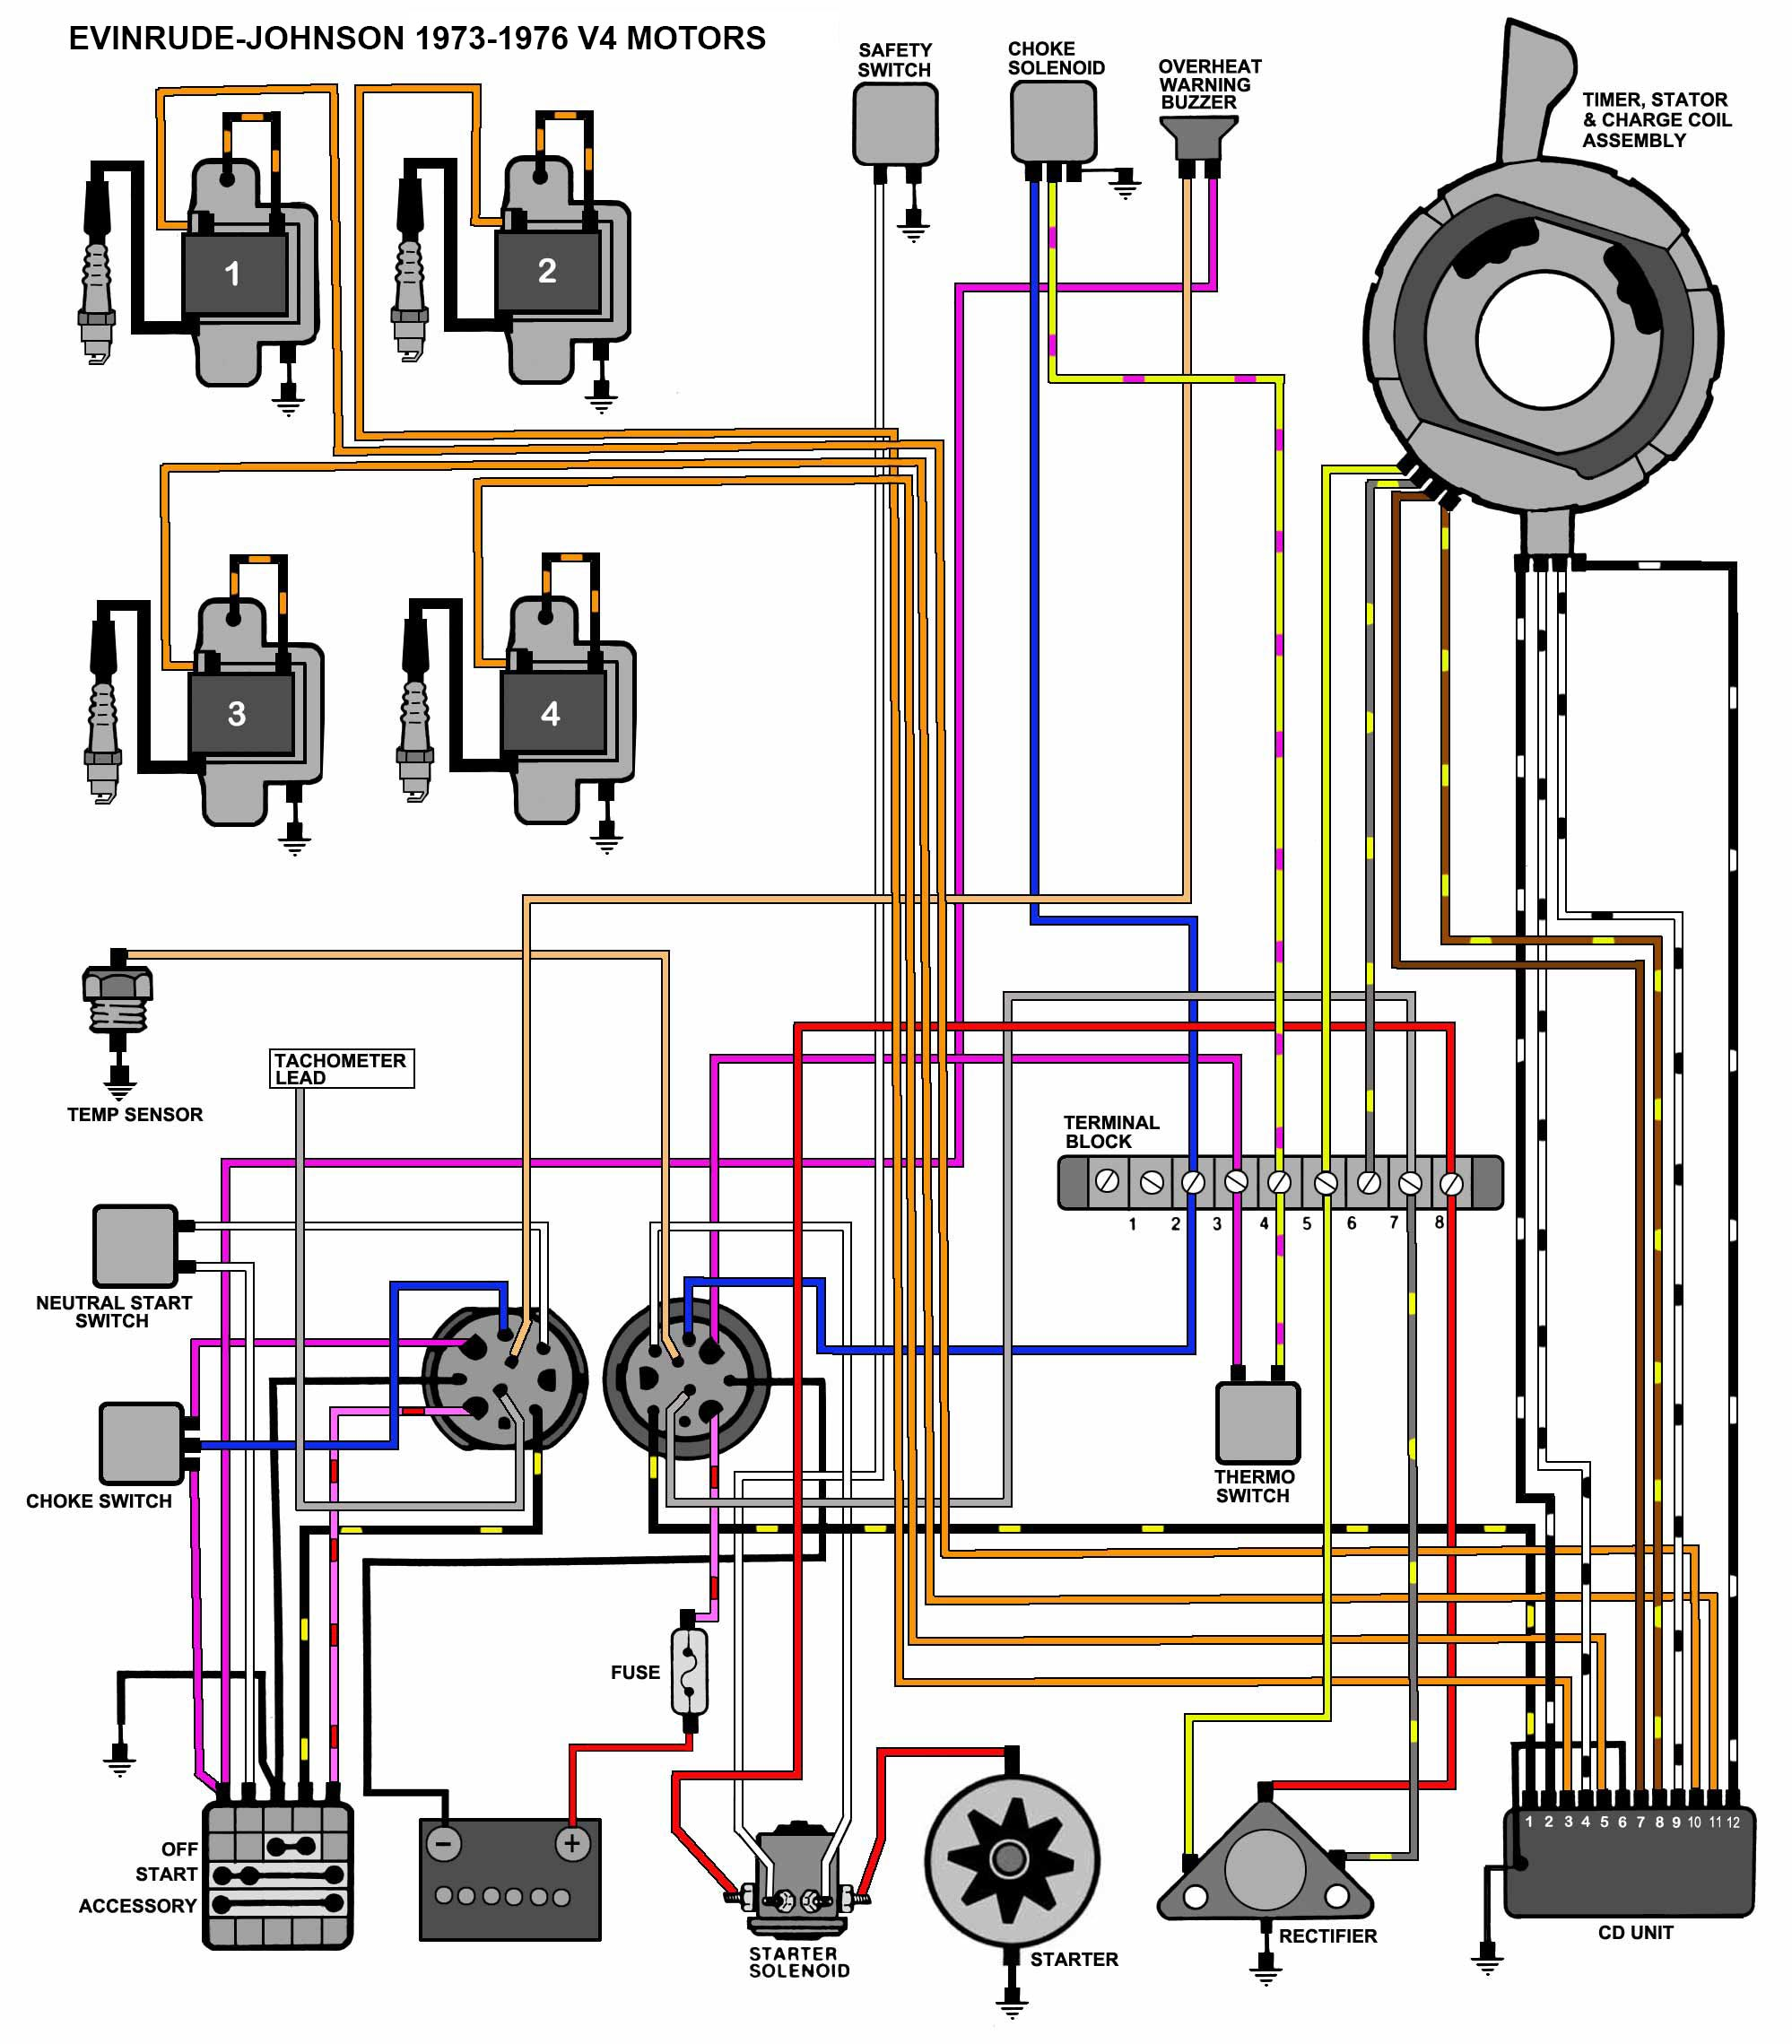 Omc Ignition Wiring Diagram | Schematic Diagram on chris craft wiring diagram, yamaha golf cart wiring diagram, yamaha road star wiring-diagram, yamaha wiring harness diagram, yamaha outboard diagnostic connector, smoker craft wiring diagram, yamaha outboard exhaust system, johnson outboard wiring diagram, sea hunt wiring diagram, tohatsu outboard wiring diagram, bennington wiring diagram, snowmobile wiring diagram, yamaha 703 remote control wiring diagram, yamaha gas wiring diagram, outboard starter wiring diagram, yamaha outboard relay, 1996 f150 fuel diagram, yamaha generator wiring diagram, yamaha tachometer 6y5-8350t-83-00, dexter wiring diagram,